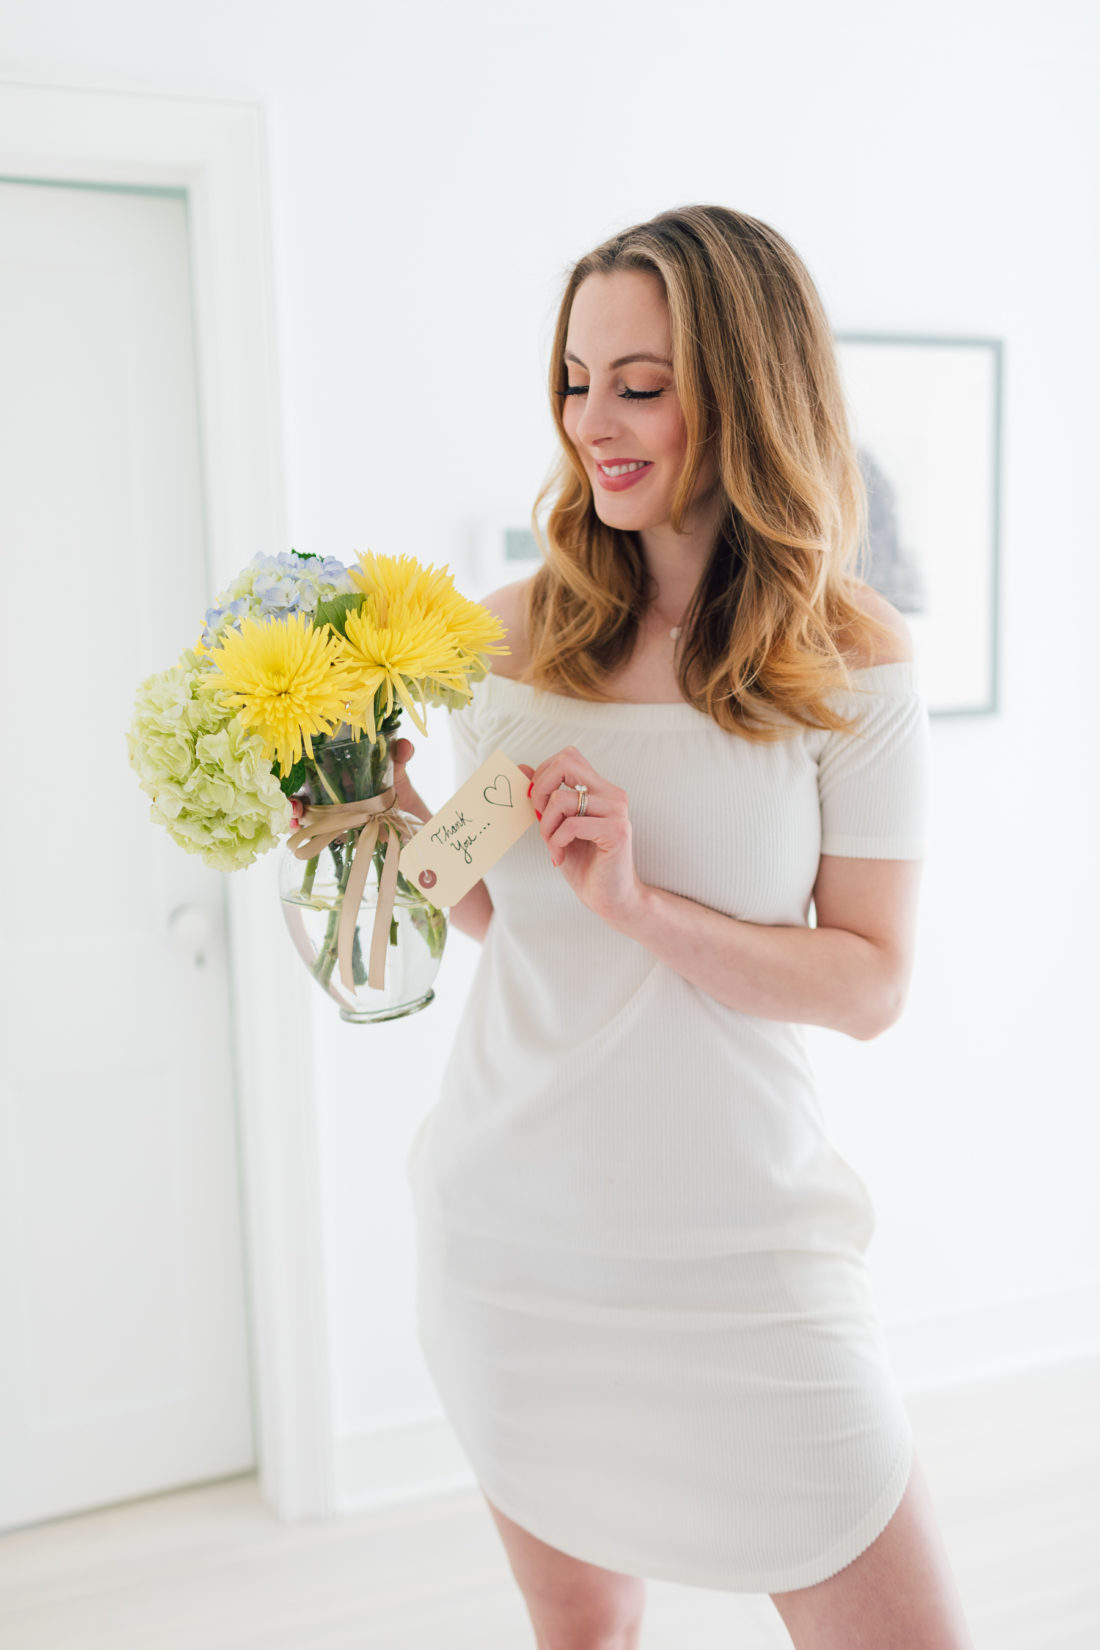 Eva Amurri Martino holds a bouquet of flowers as a gift for teachers